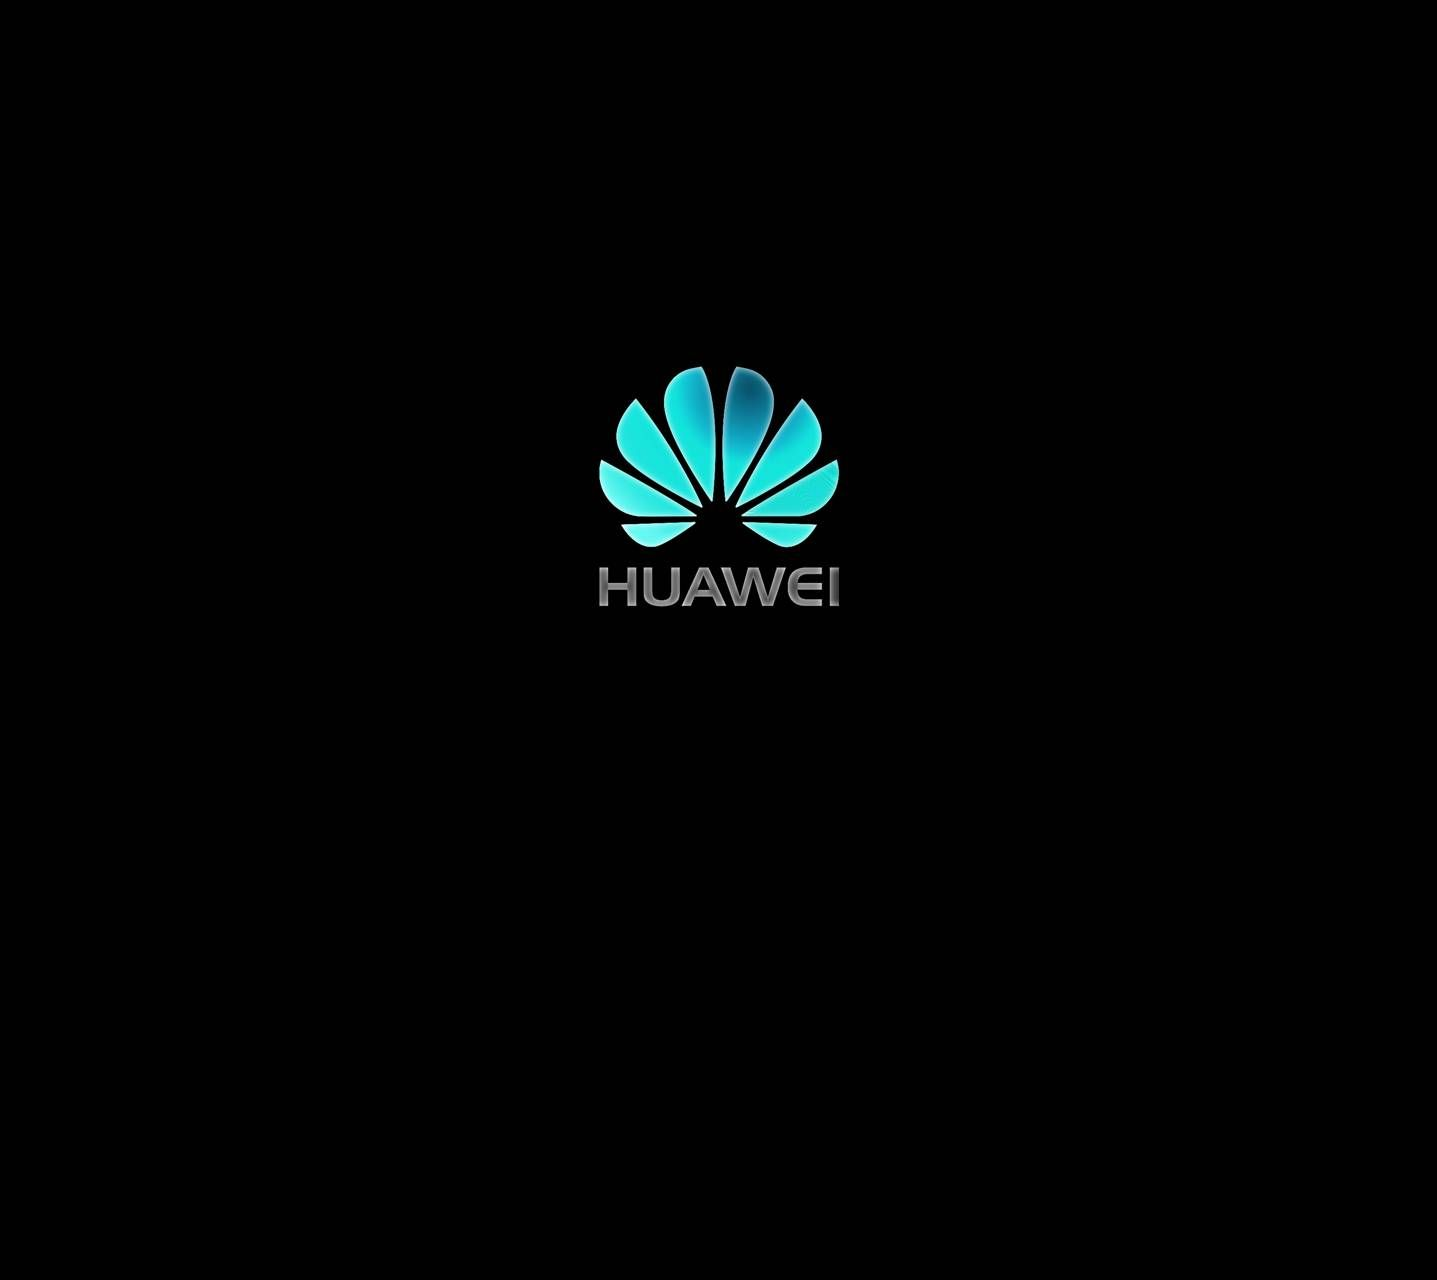 Huawei Logo - 19 Best Huawei Logo images | Smartphone, Centre, A logo